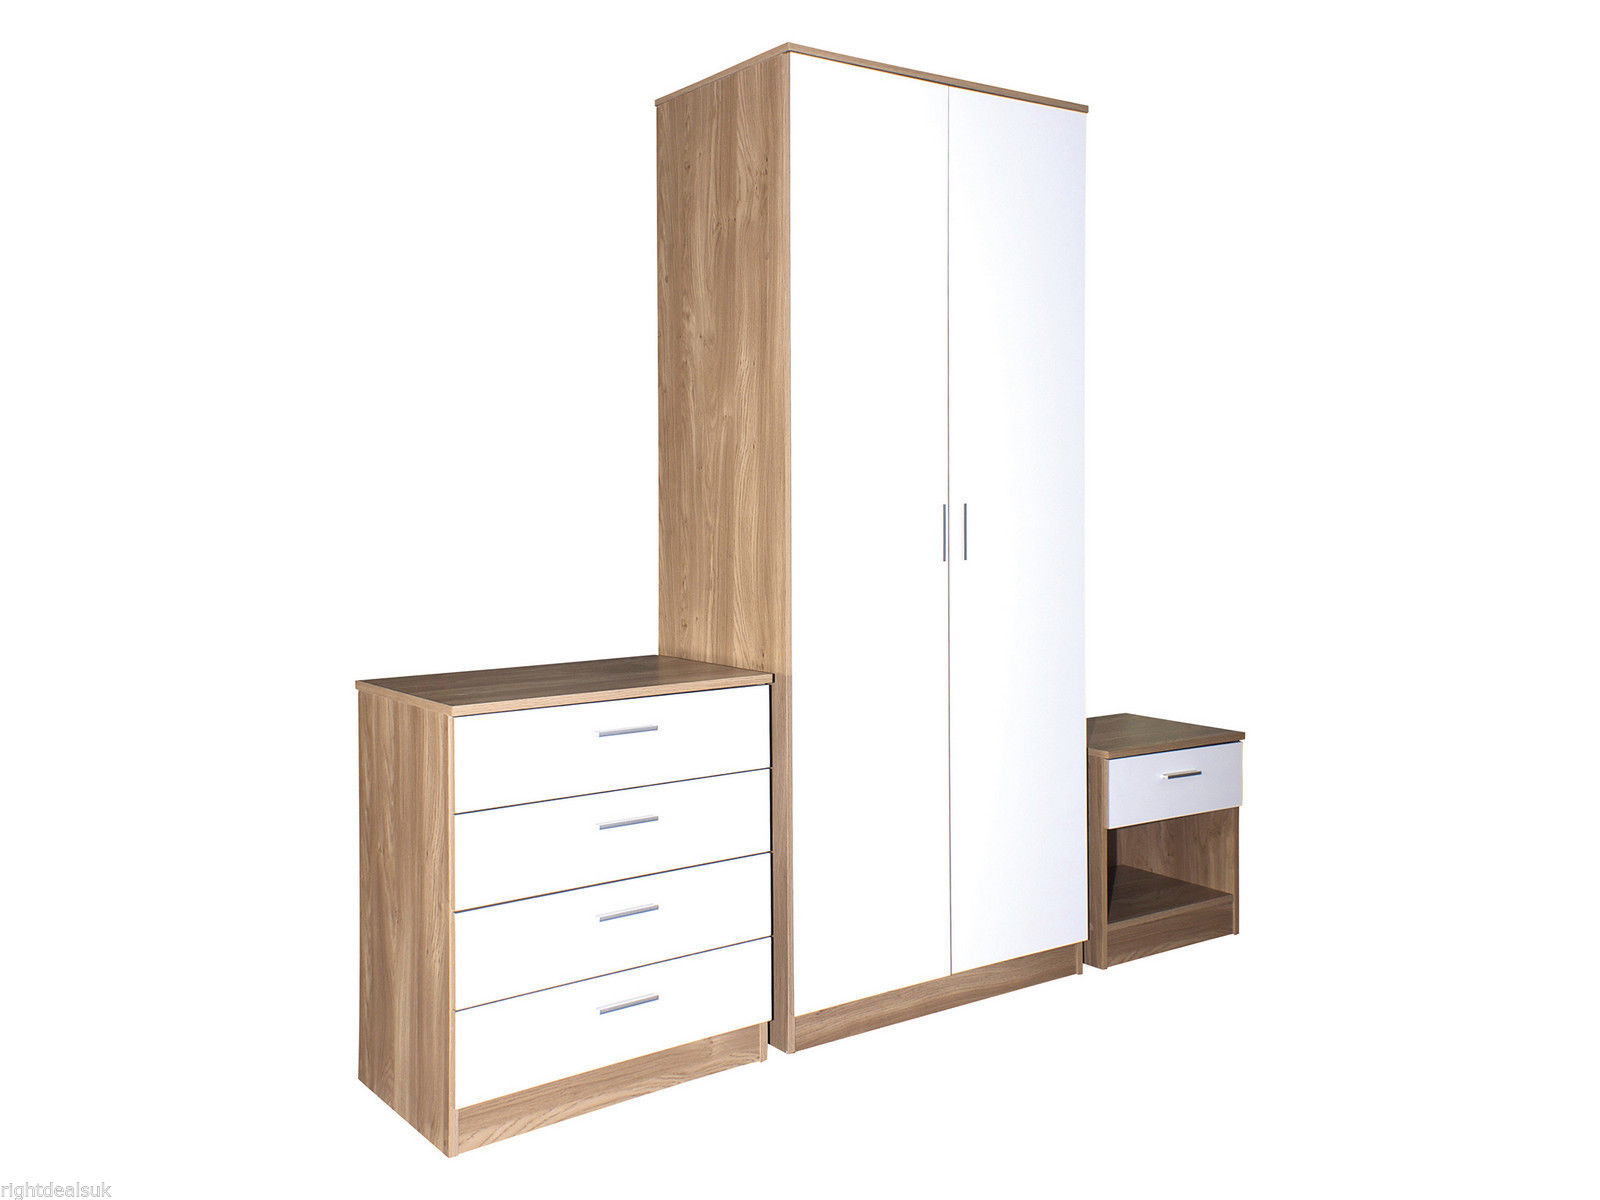 Caspian white gloss oak bedroom 3 piece furniture package for Furniture 3 room package